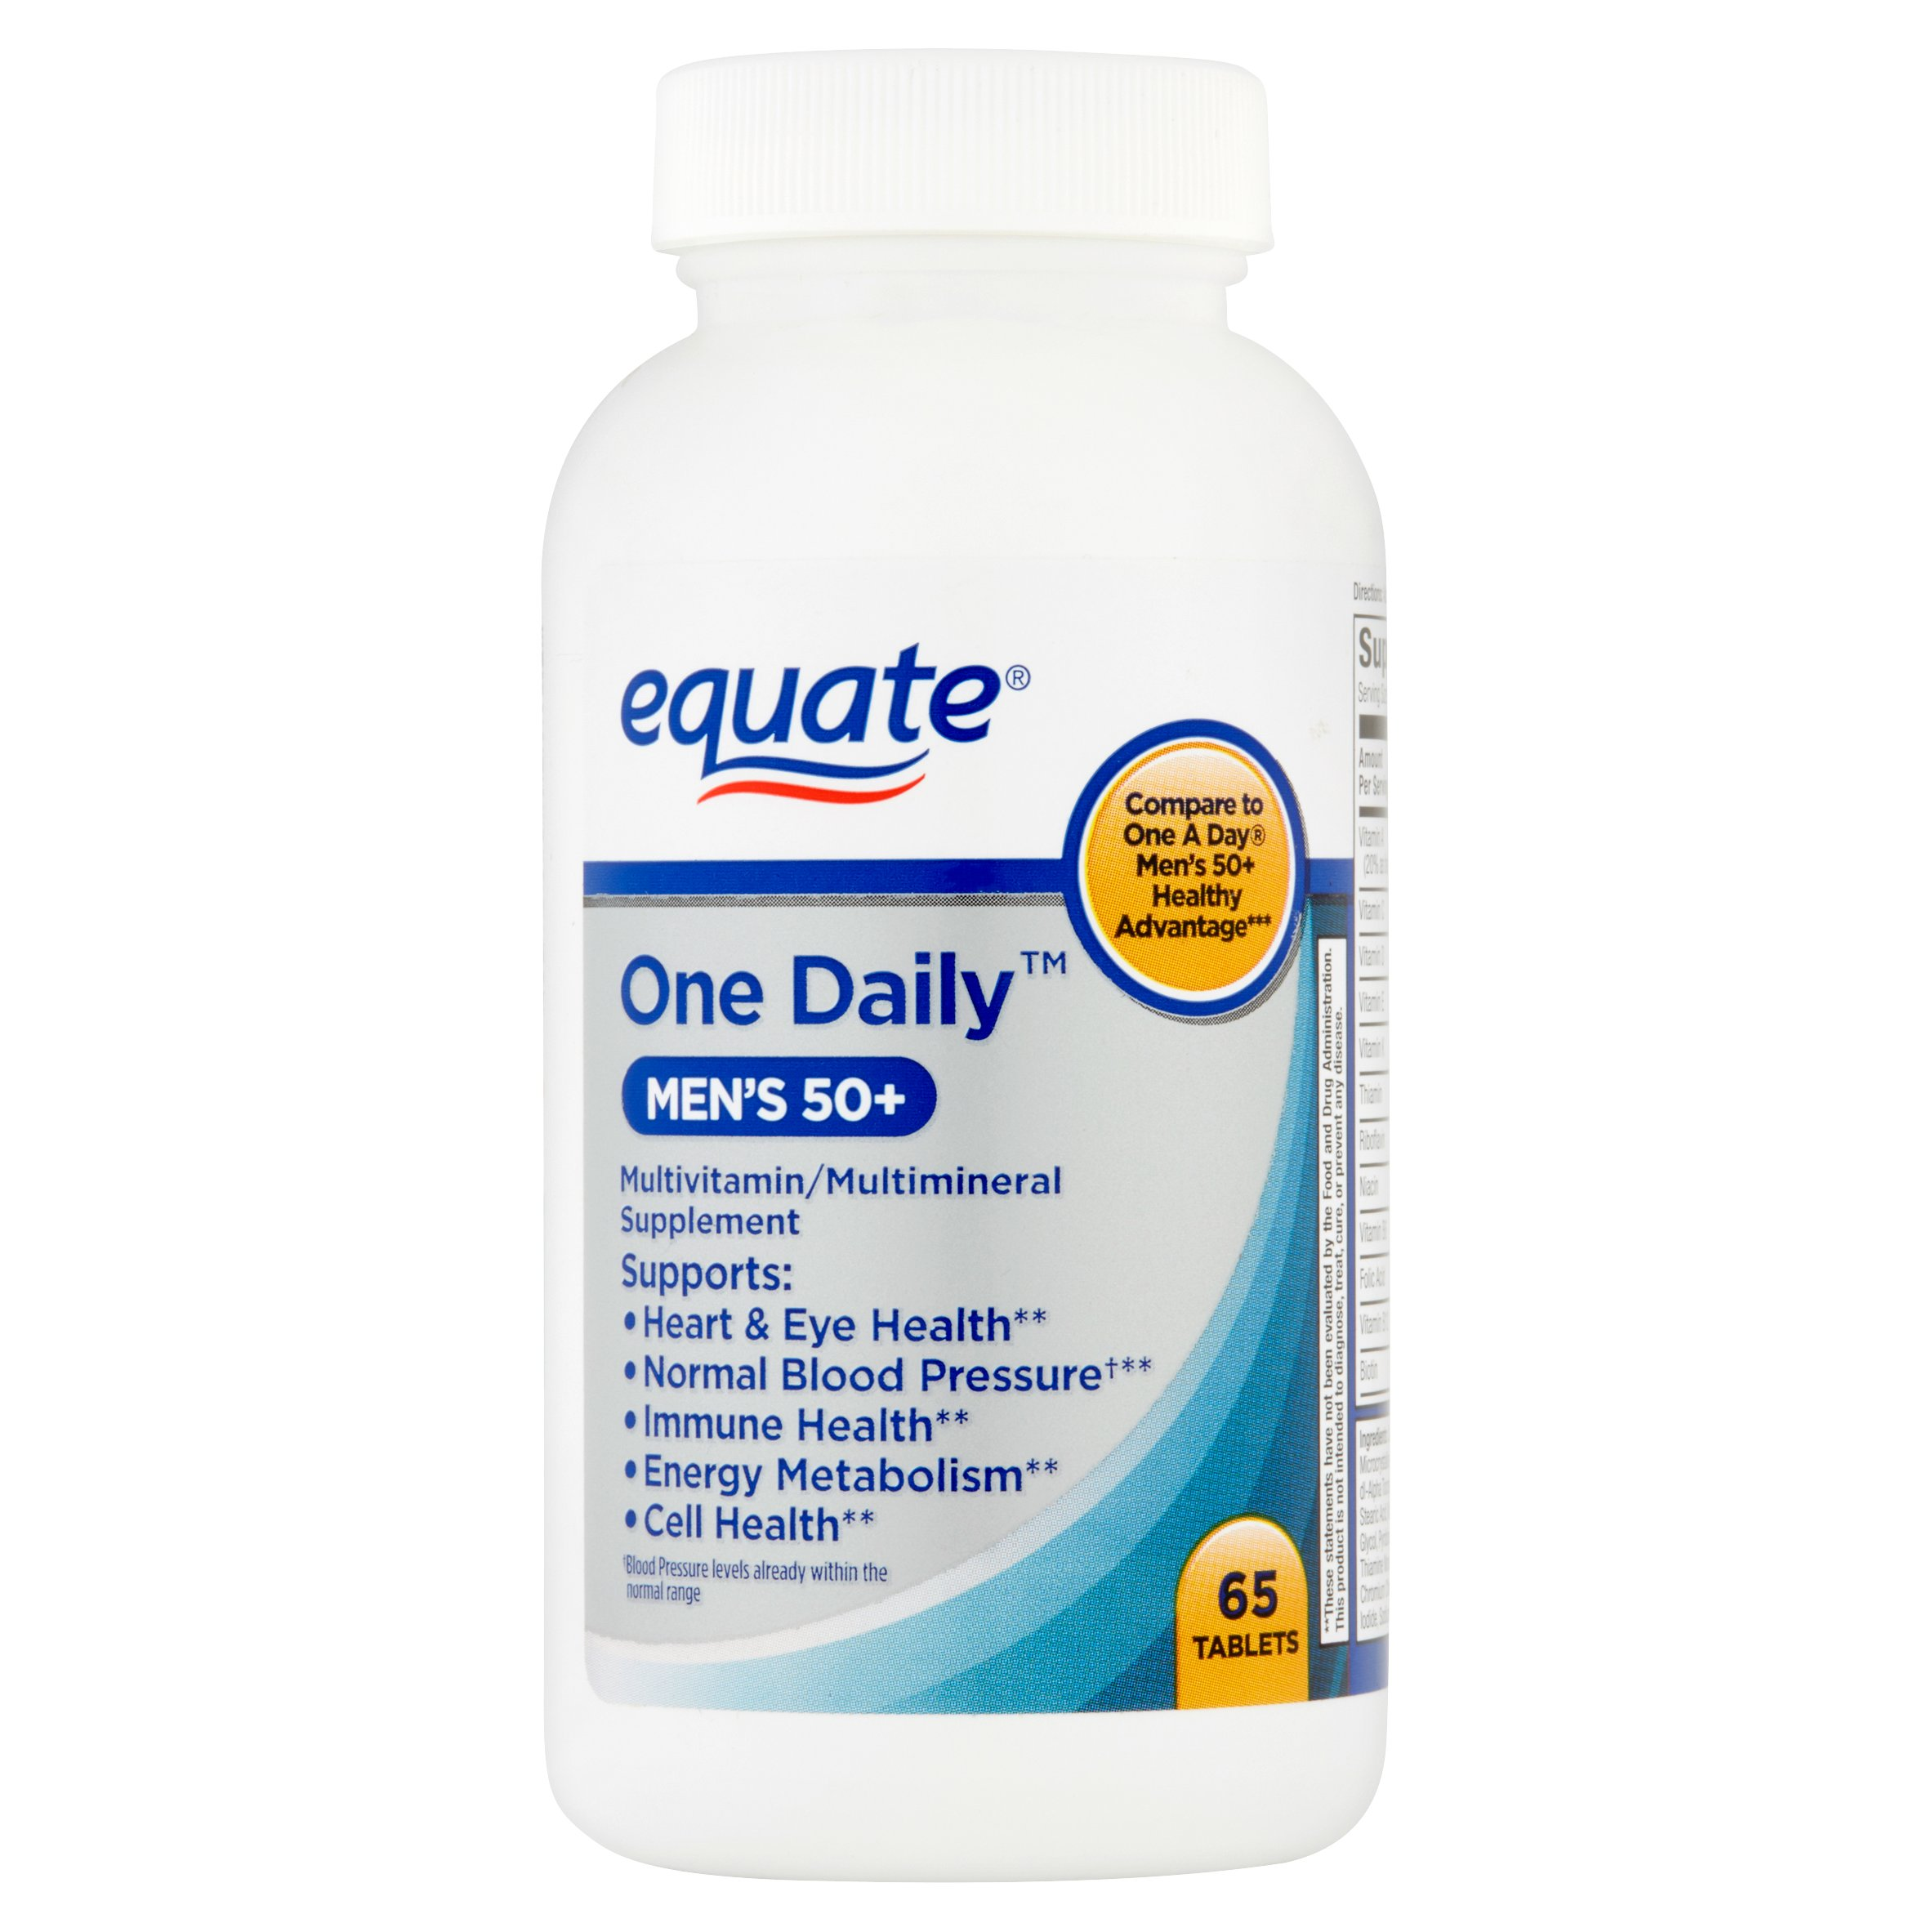 Equate One Daily Men's 50+ Multivitamin, 65 Ct